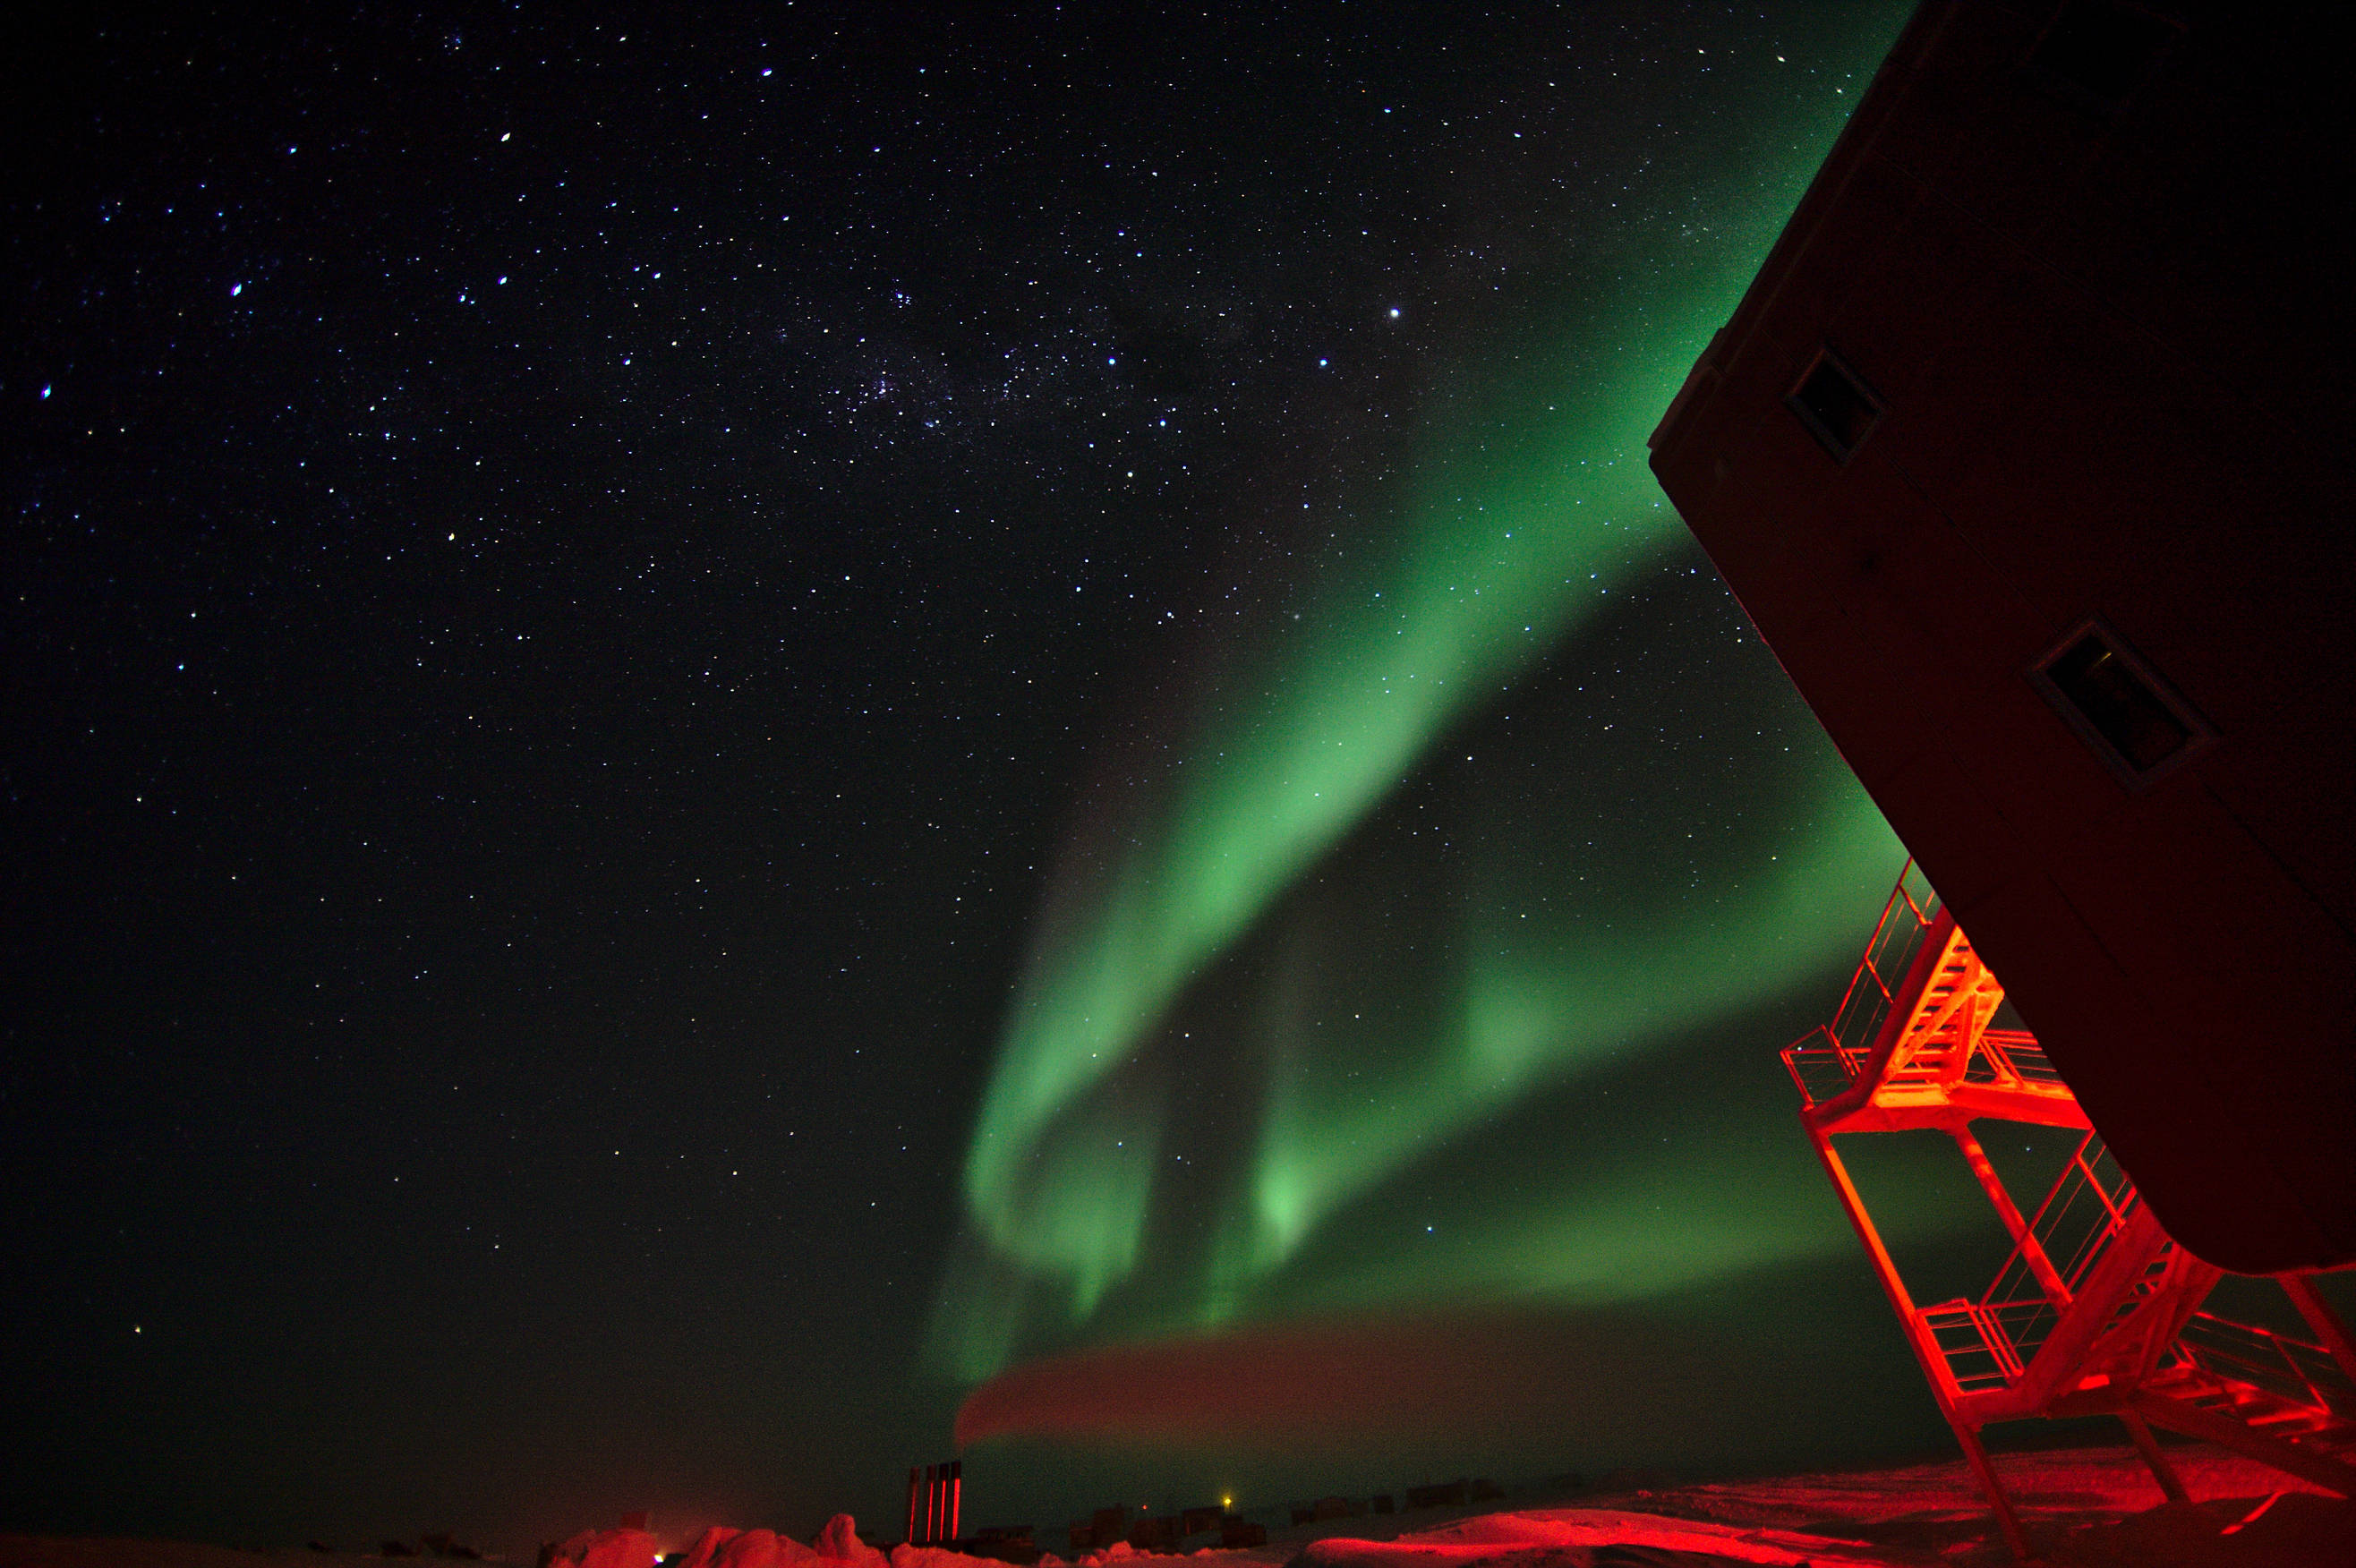 Auroras above the summer camp and power plant. To the right a corner of the station building with the red-illuminated emergency exits